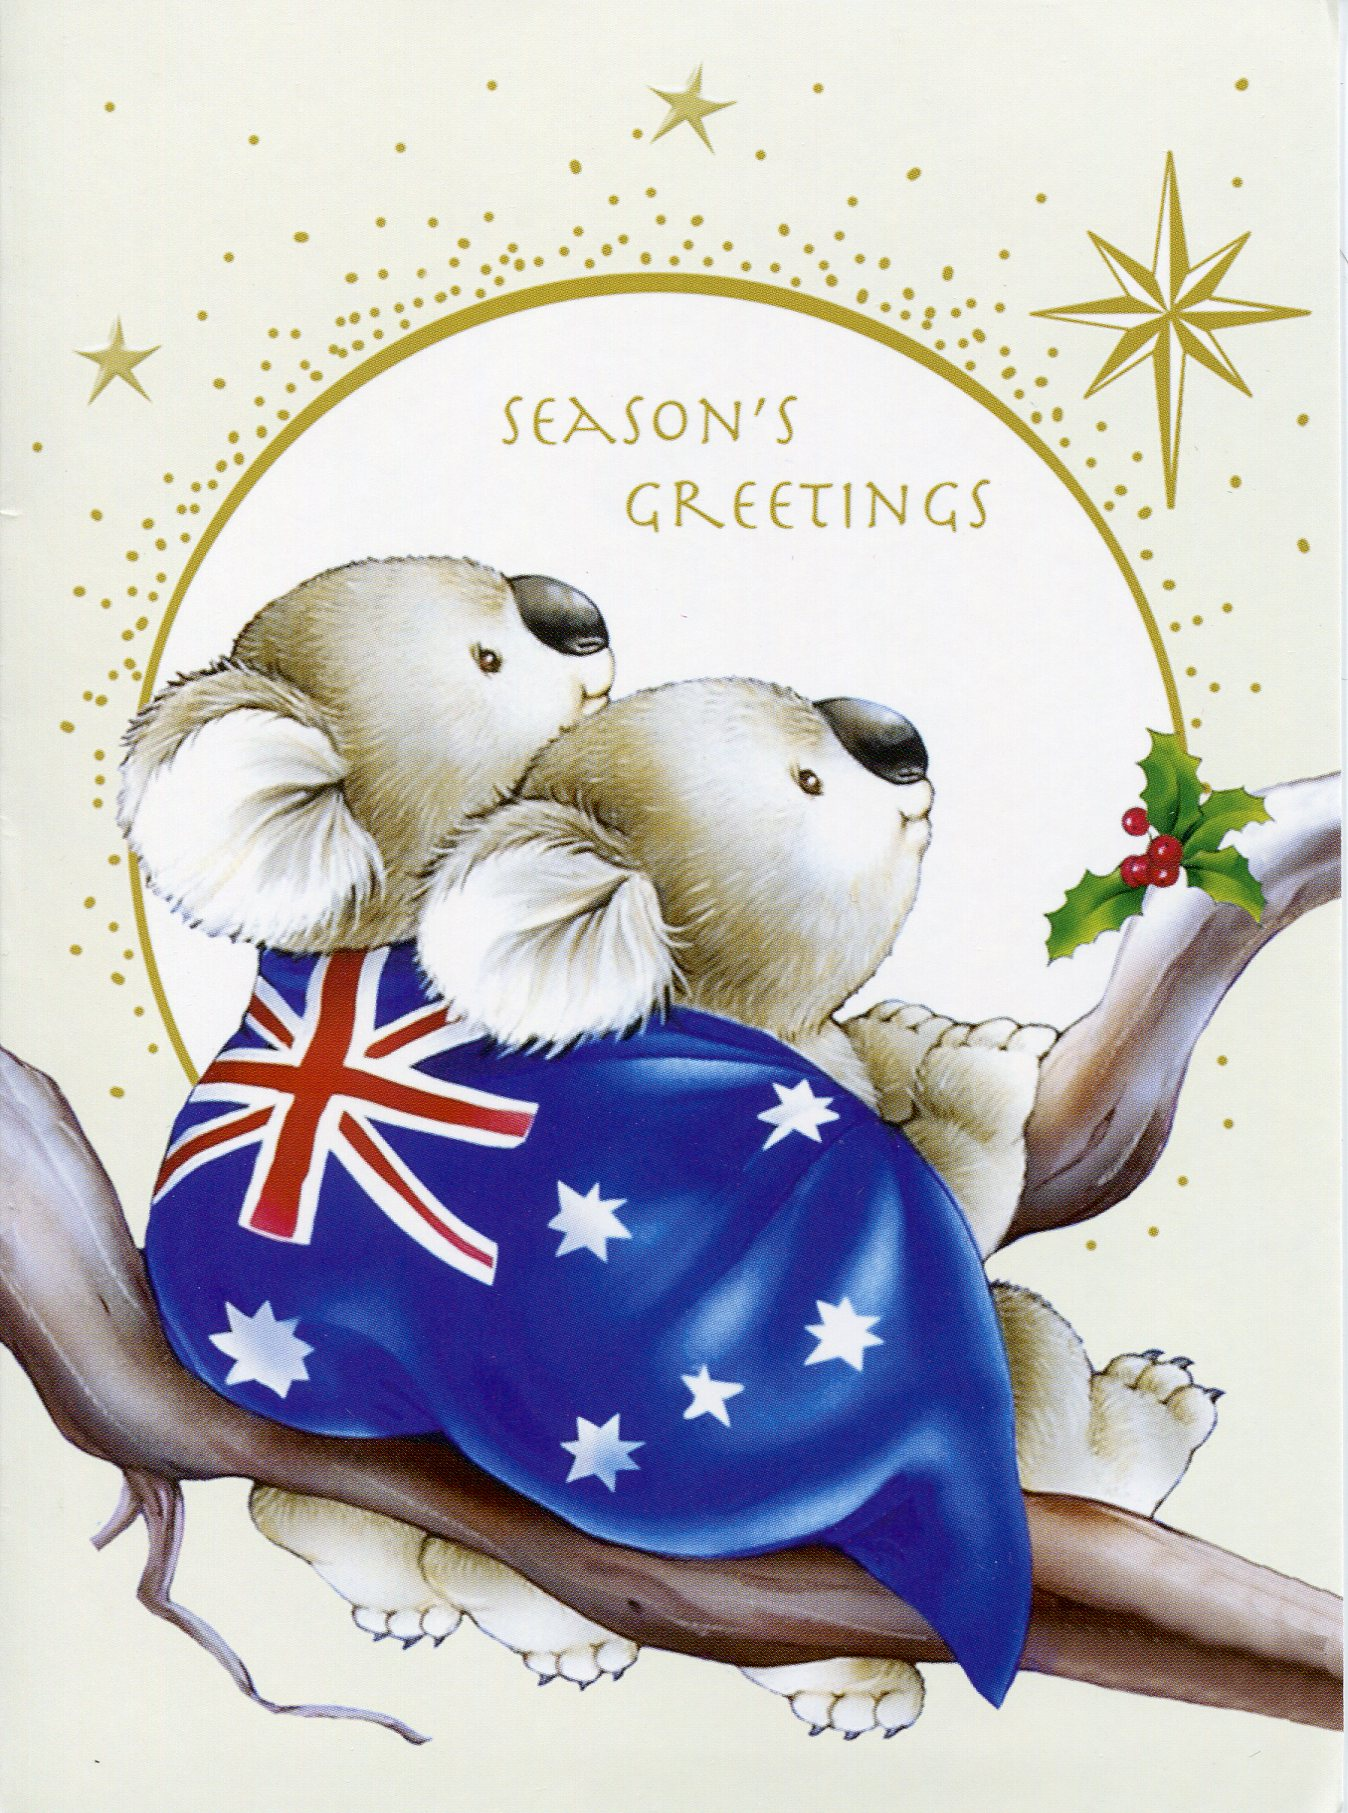 Seasons greetings from australia remembering letters and postcards seasons greetings m4hsunfo